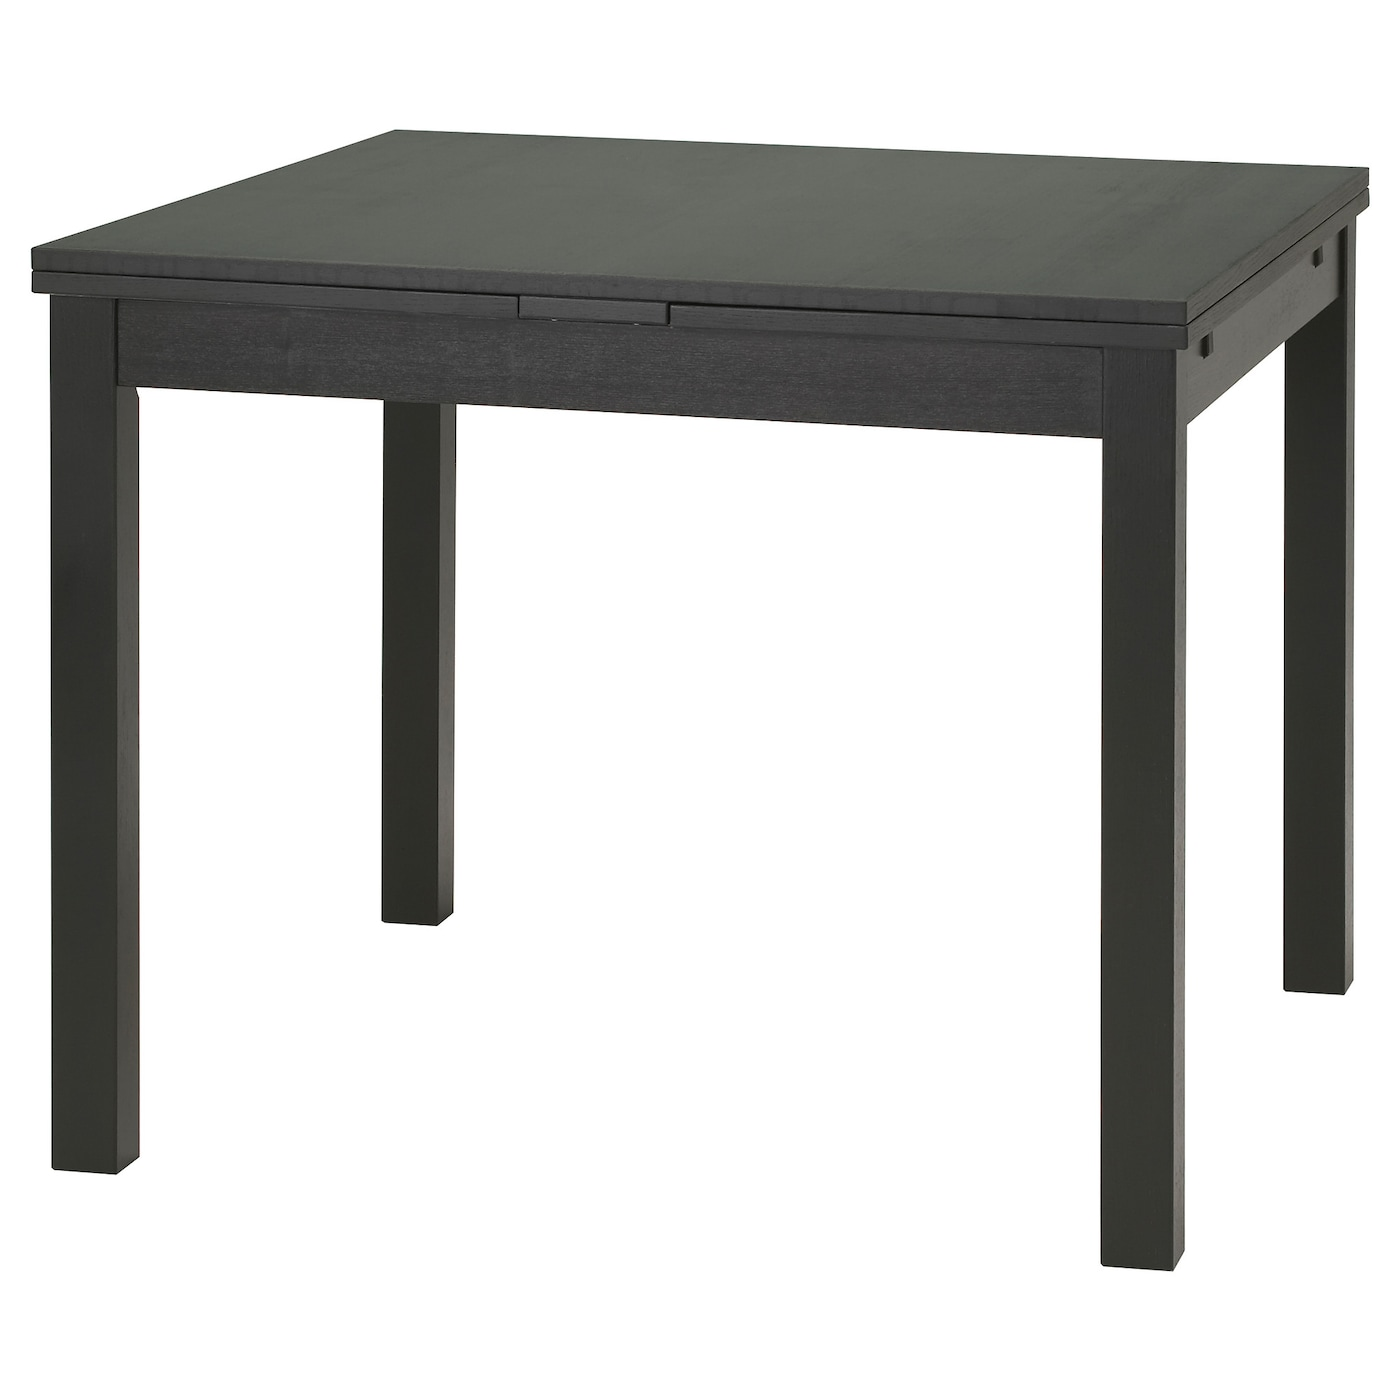 Bjursta extendable table brown black 90 129 168x90 cm ikea for Table 140 cm extensible